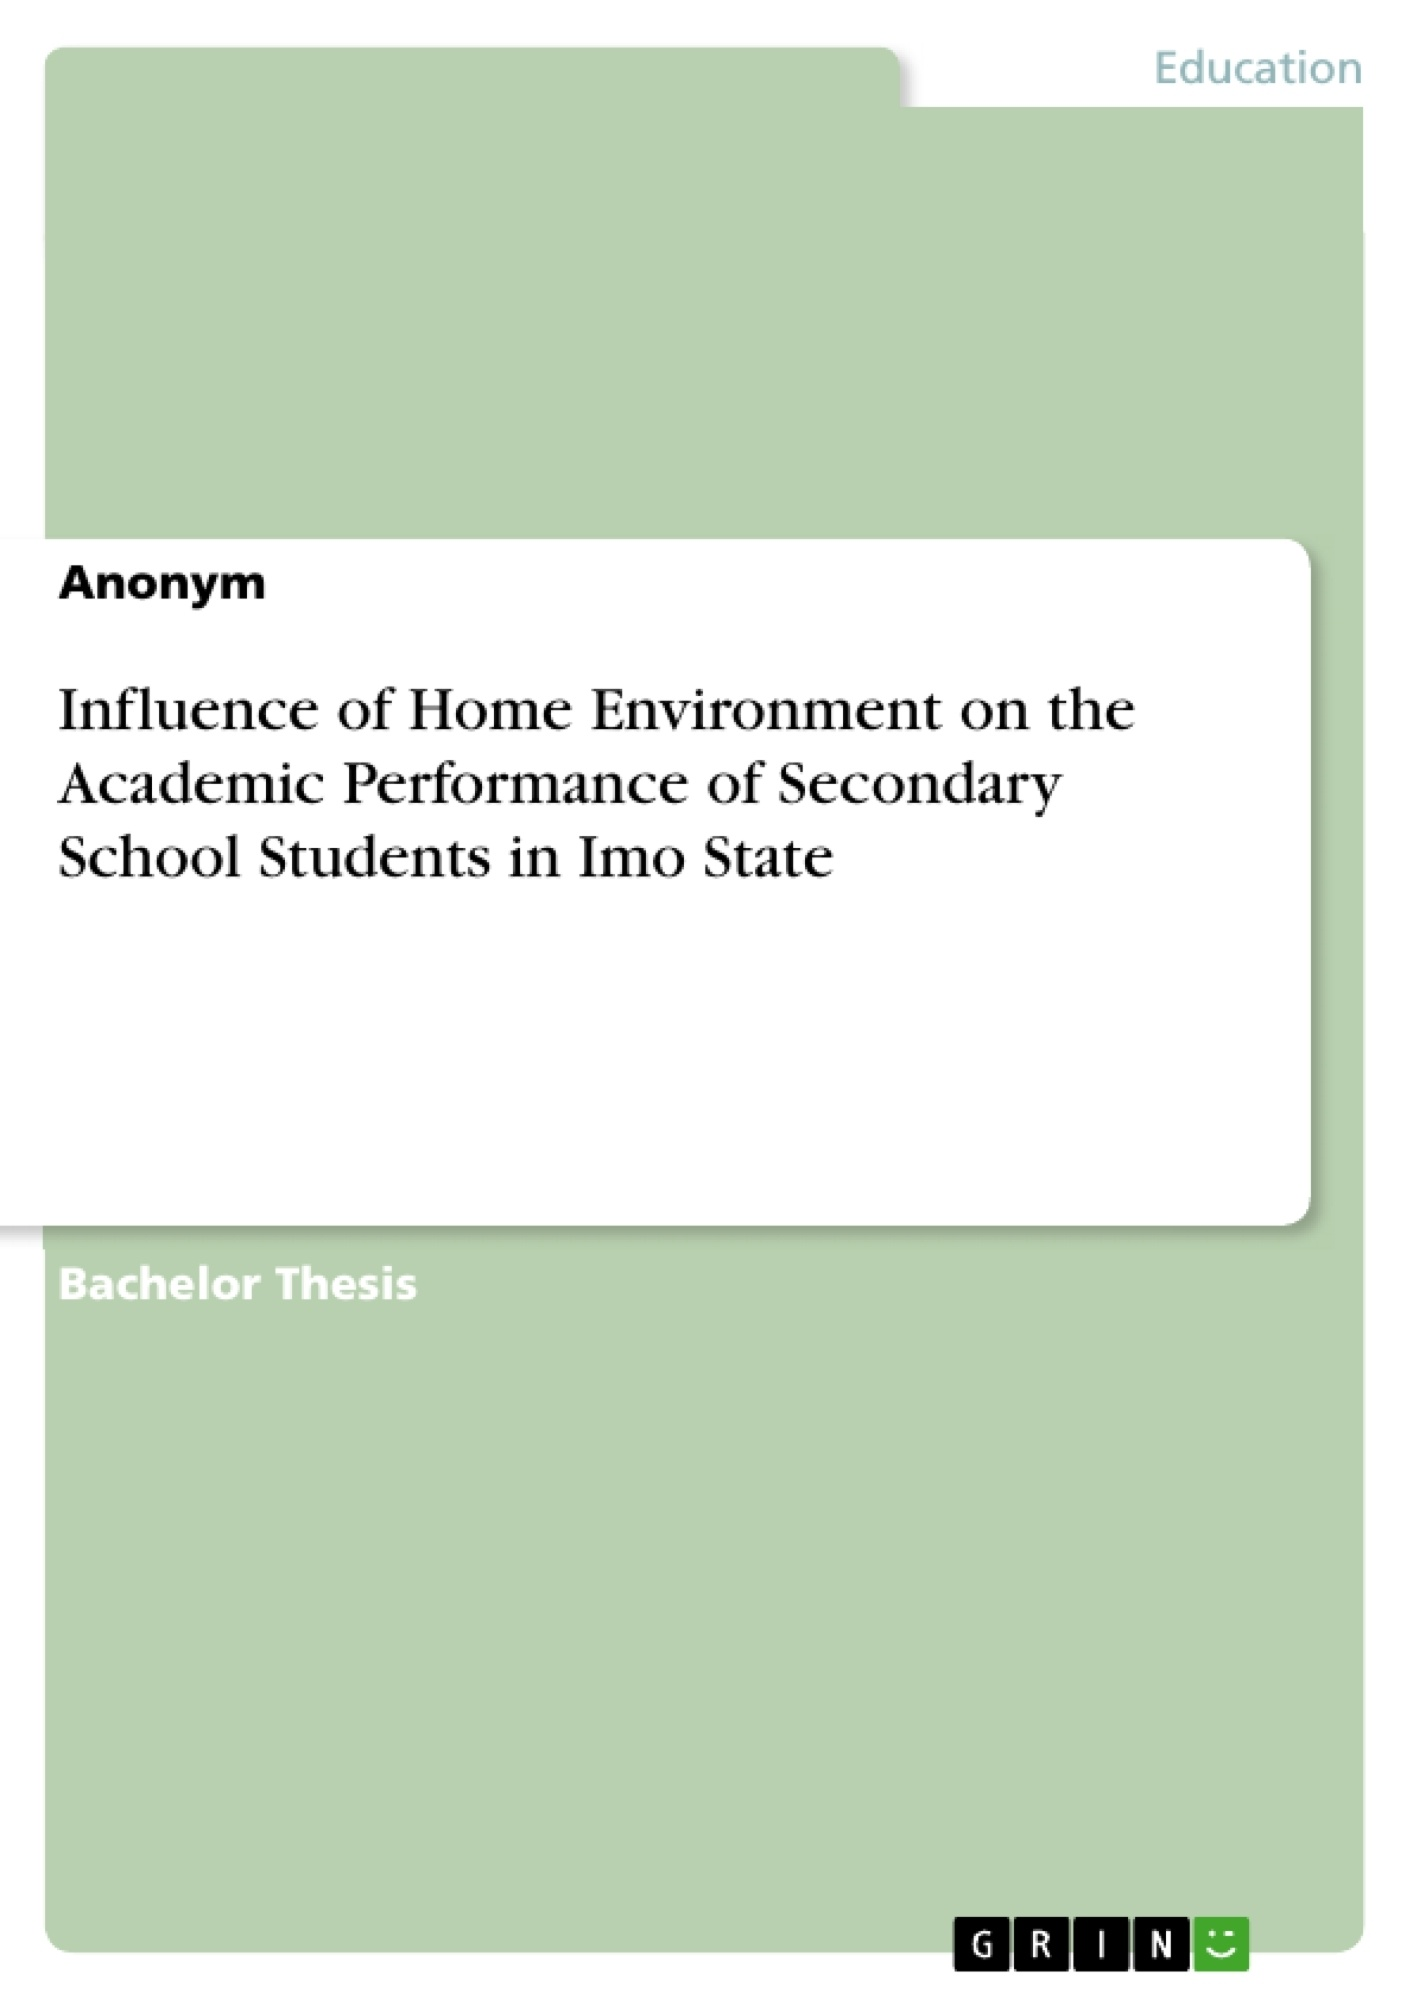 Title: Influence of Home Environment on the Academic Performance of Secondary School Students in Imo State